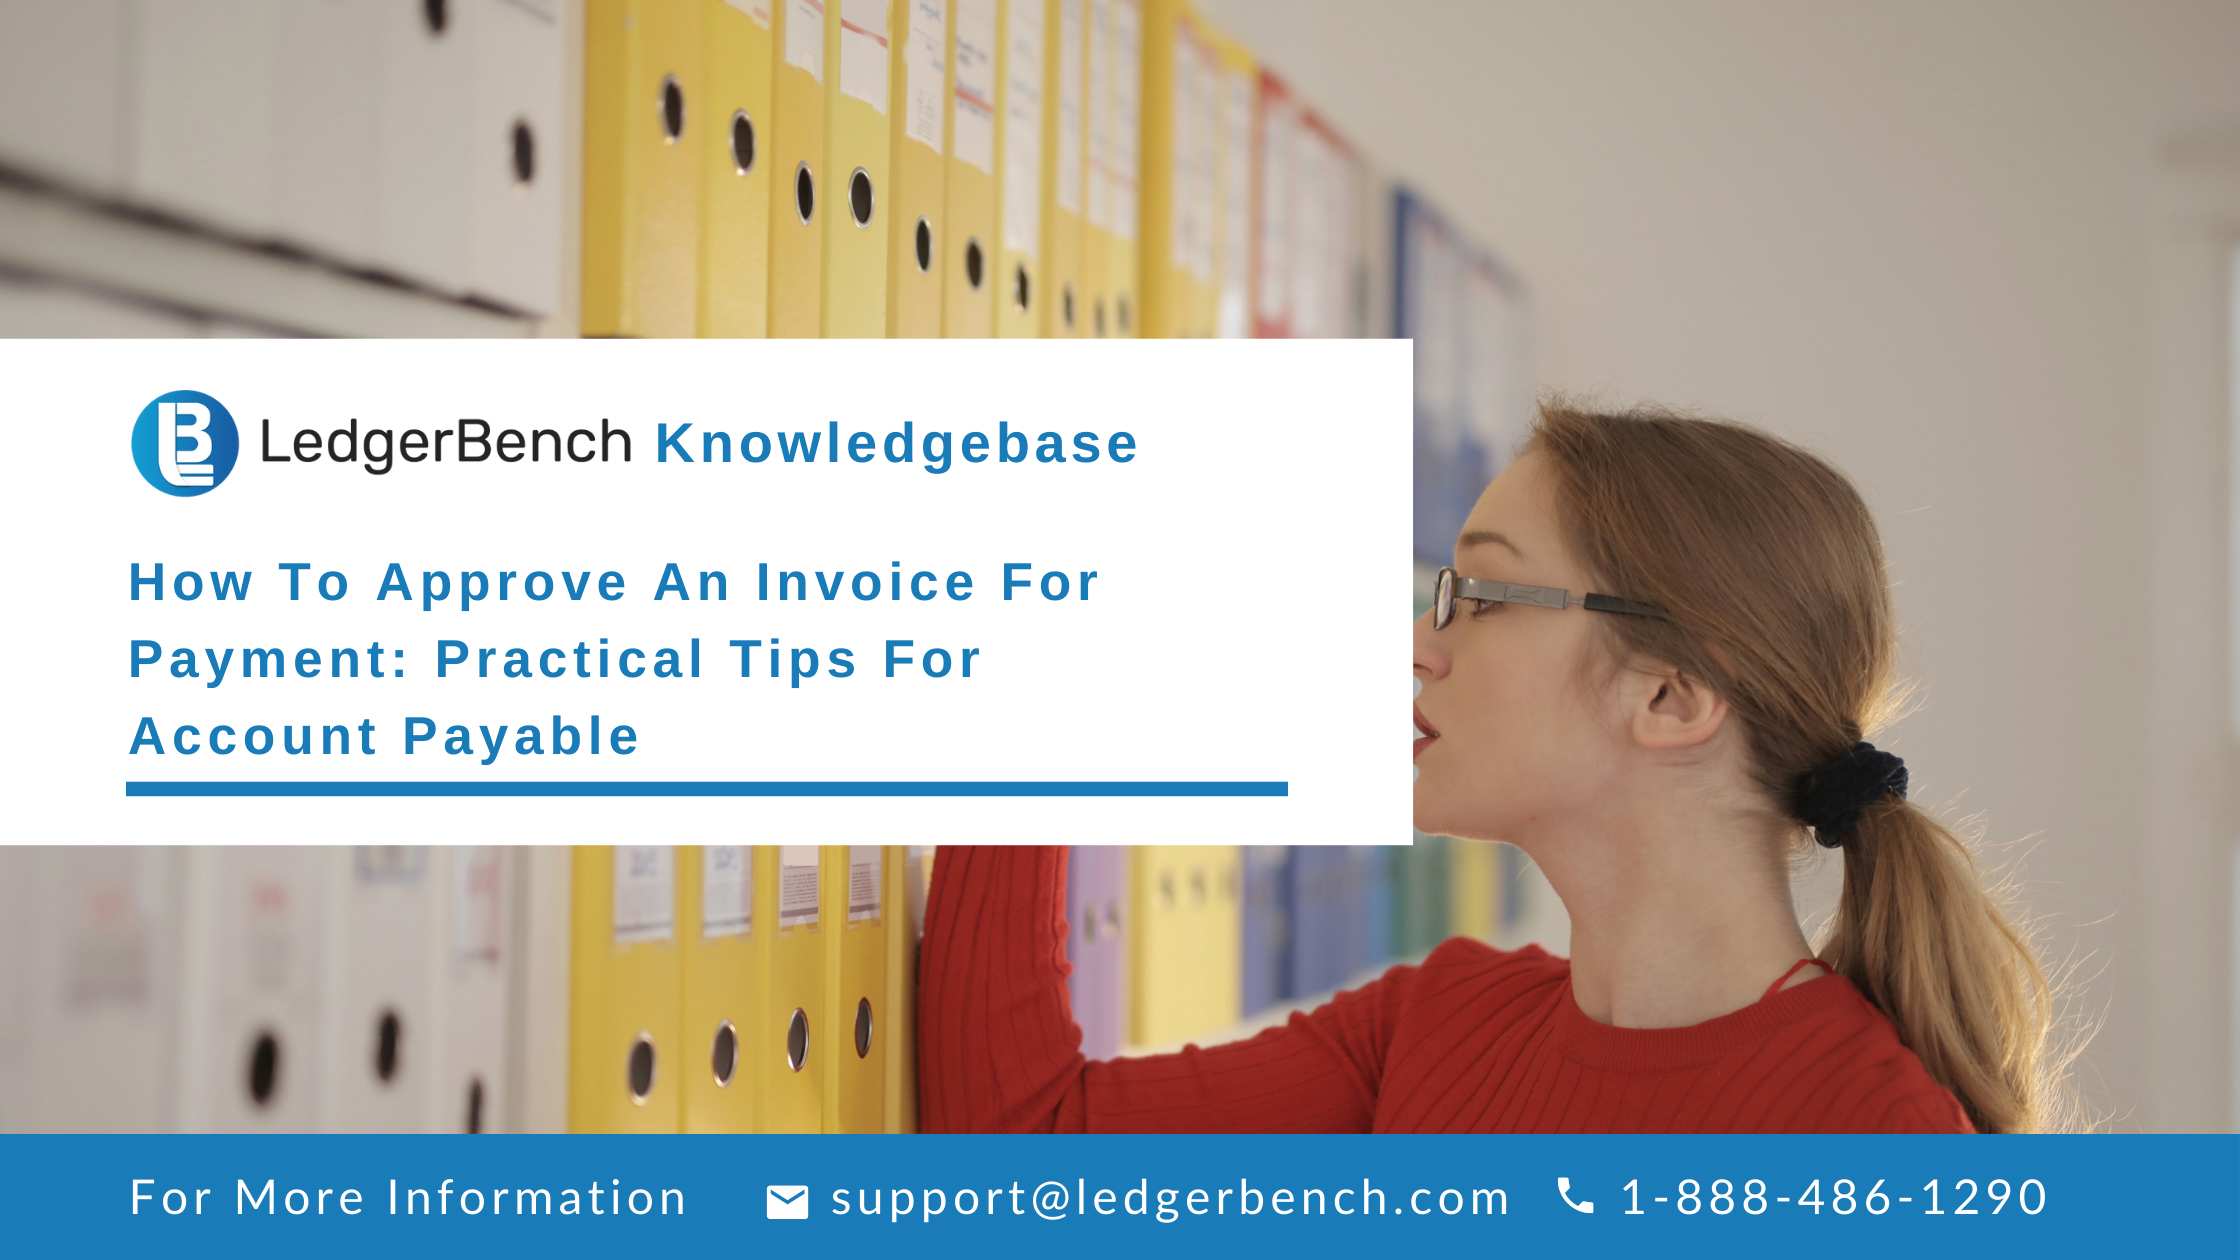 How To Approve An Invoice For Payment: Practical Tips For Account Payable